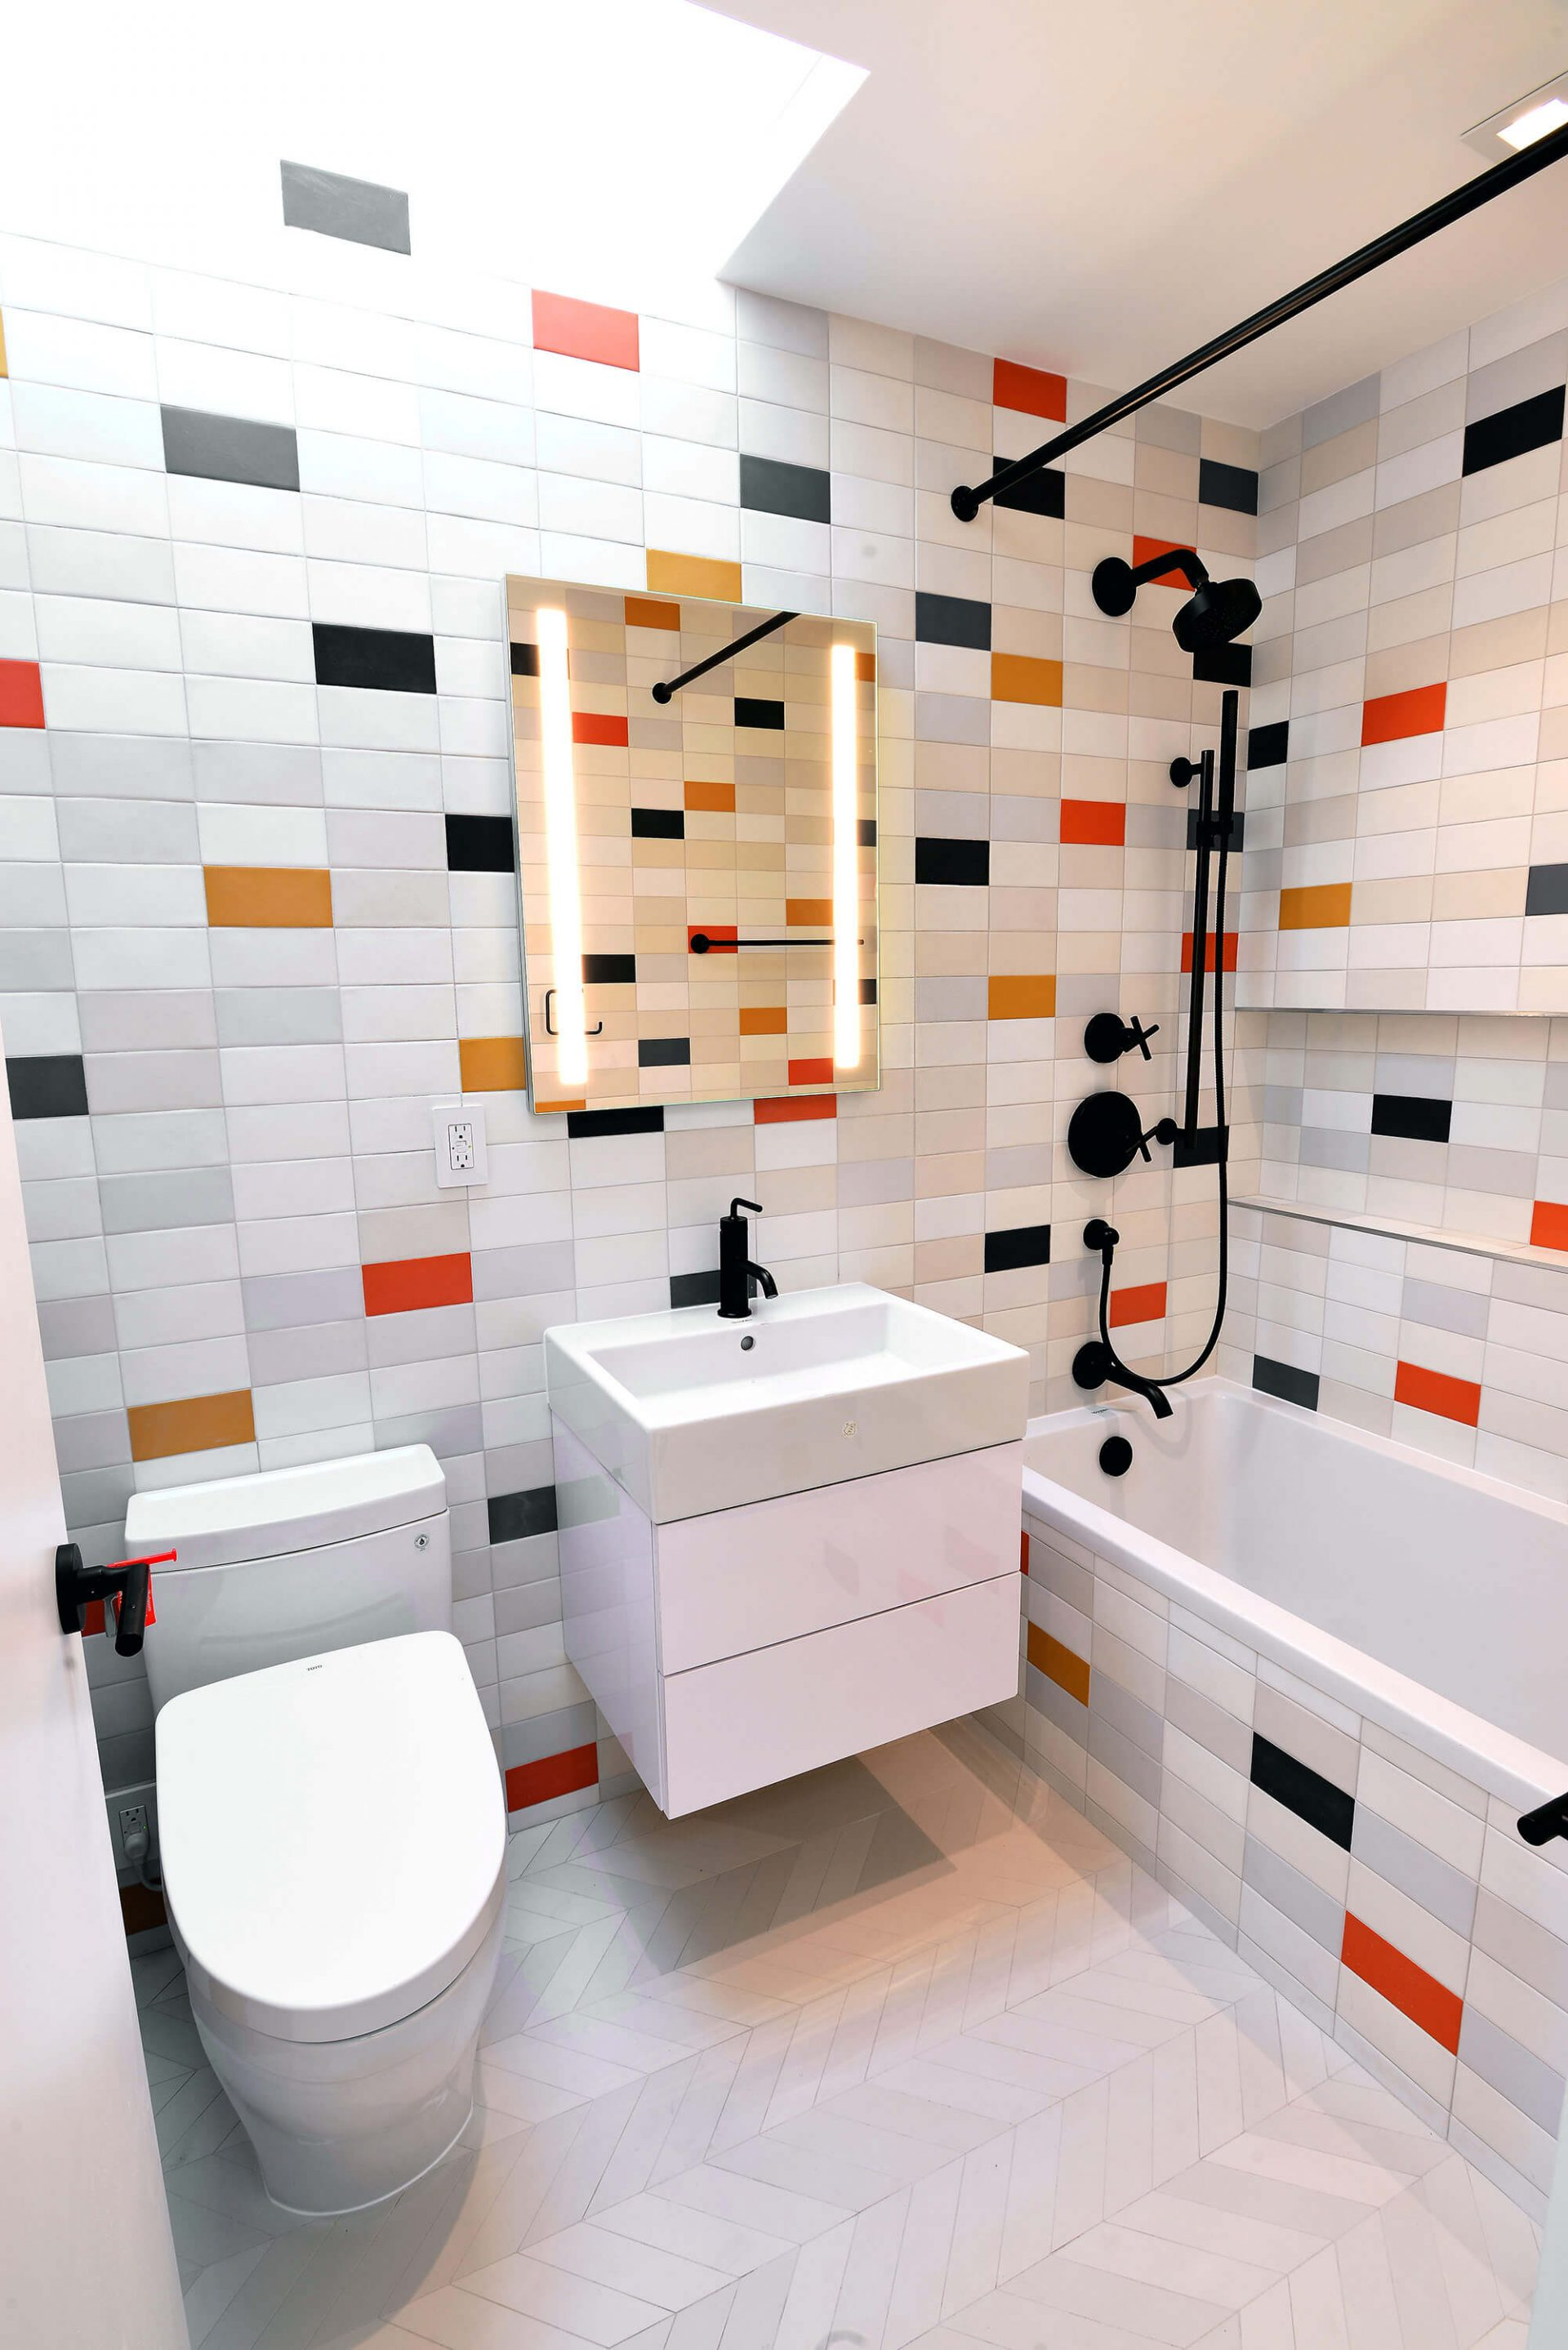 As you can see, this bathroom contains all the necessary pieces of furniture and sanitary ware that do not make the room cramped, but at the same time add some functionality to it. The idea of this interior design is to visually expand the space and at the same time make the room welcoming, cozy, and beautiful. This task is achieved by the correct selection of colors and high-quality lighting. You can enhance the interior design of your own bathroom by taking the interior shown in this photo as a good example. We are always happy to help you get a bathroom that fully suits your tastes, desires and needs.